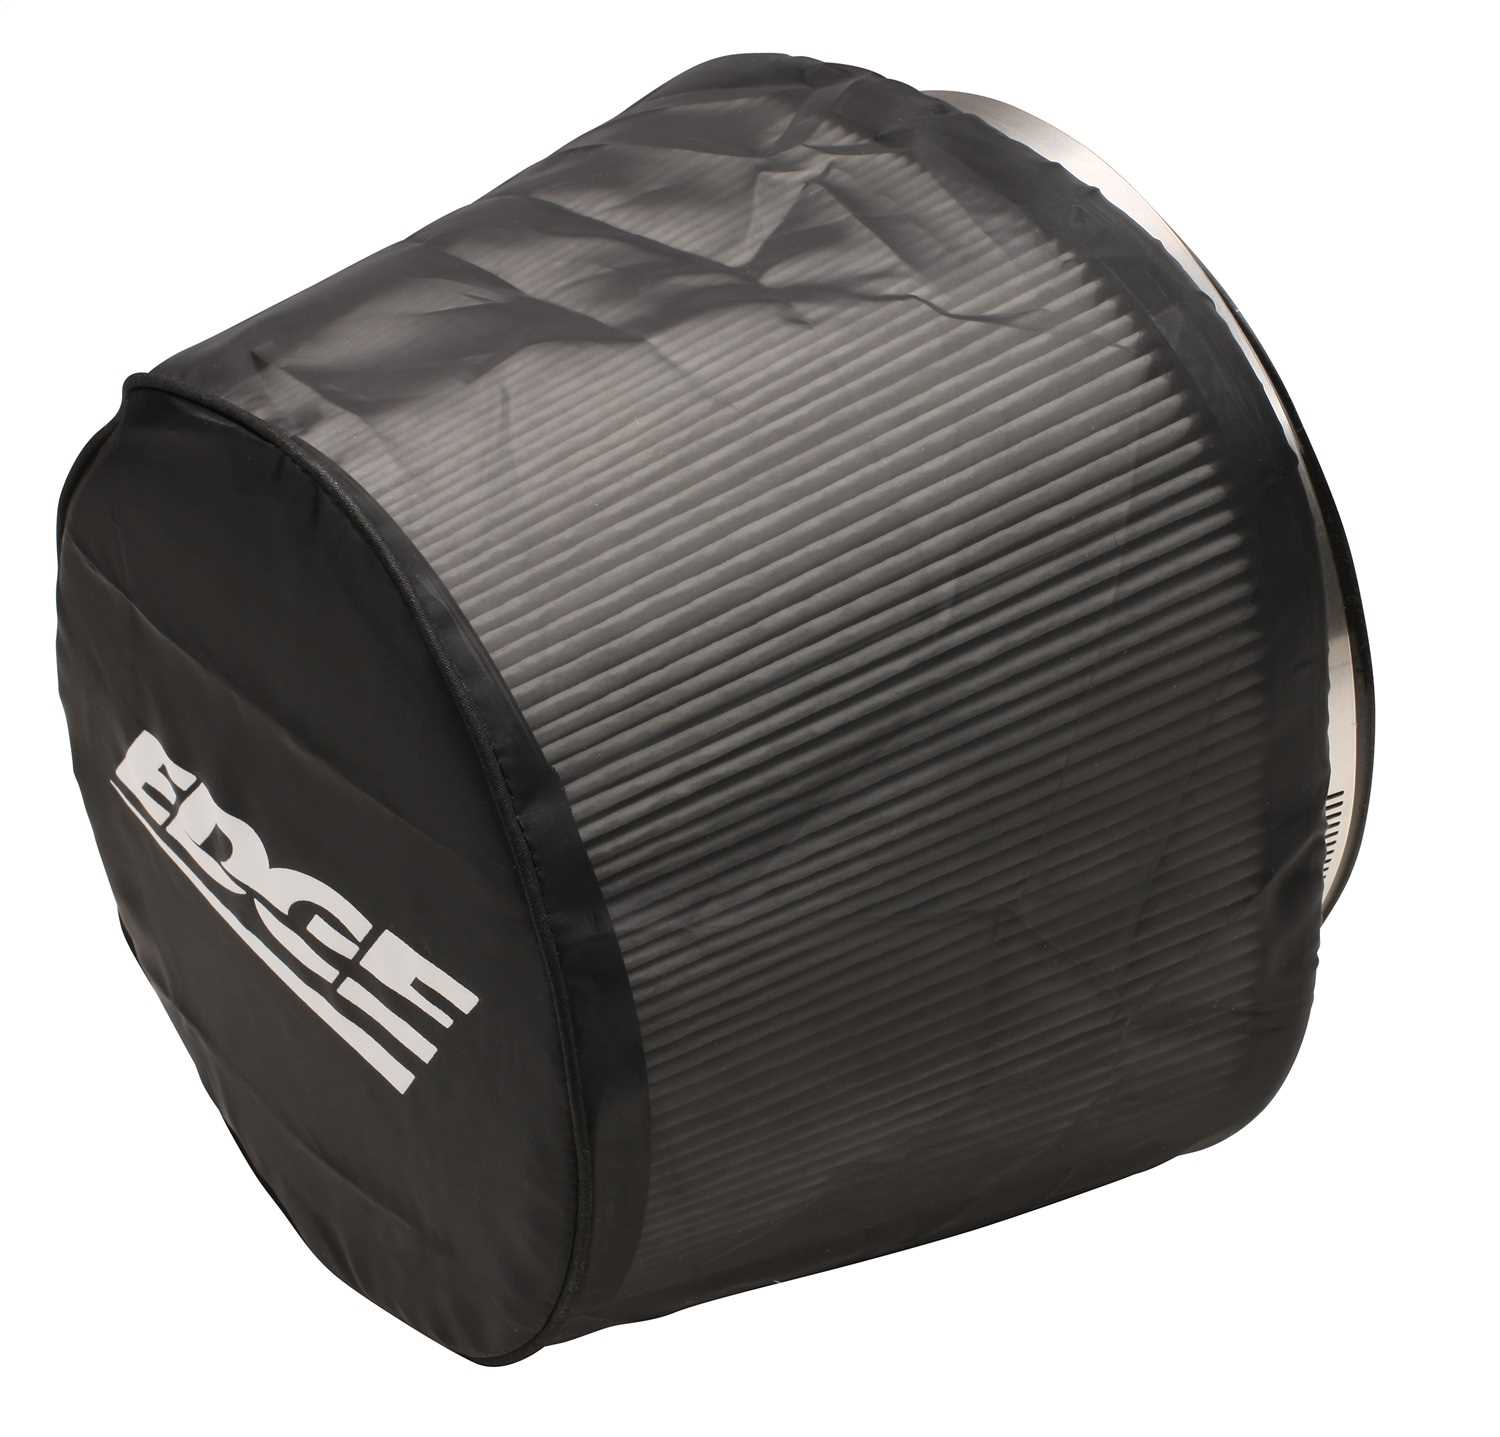 Edge Products Jammer Filter Wrap Covers 88101